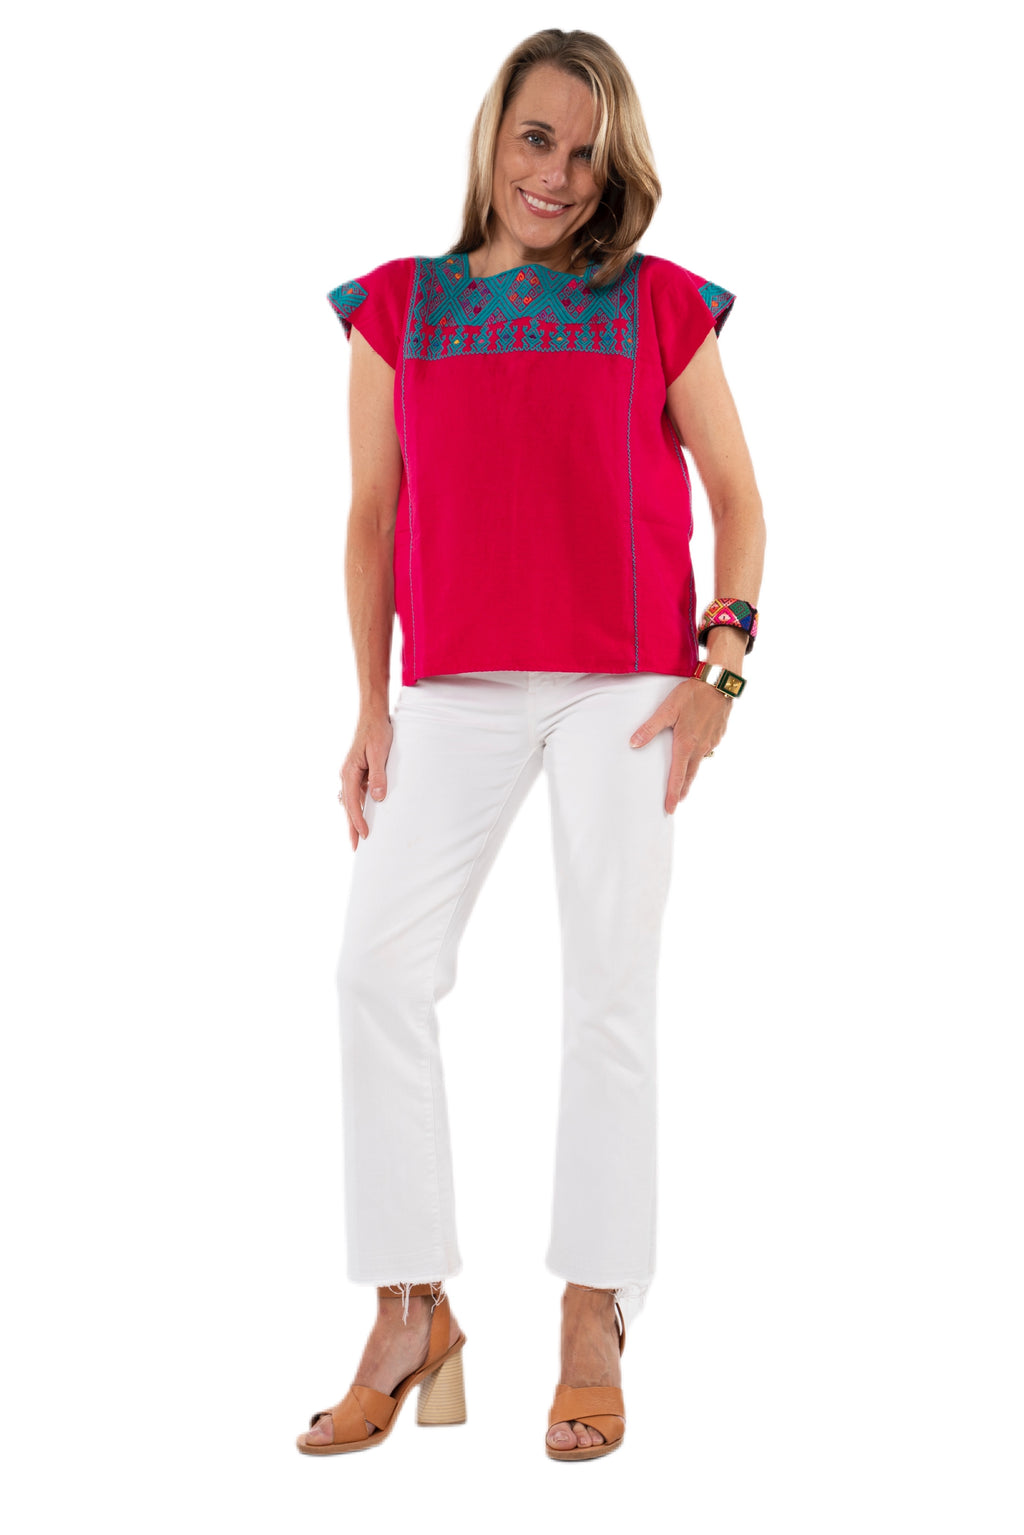 San Andres Mexican Blouse - Fuschia, Teal